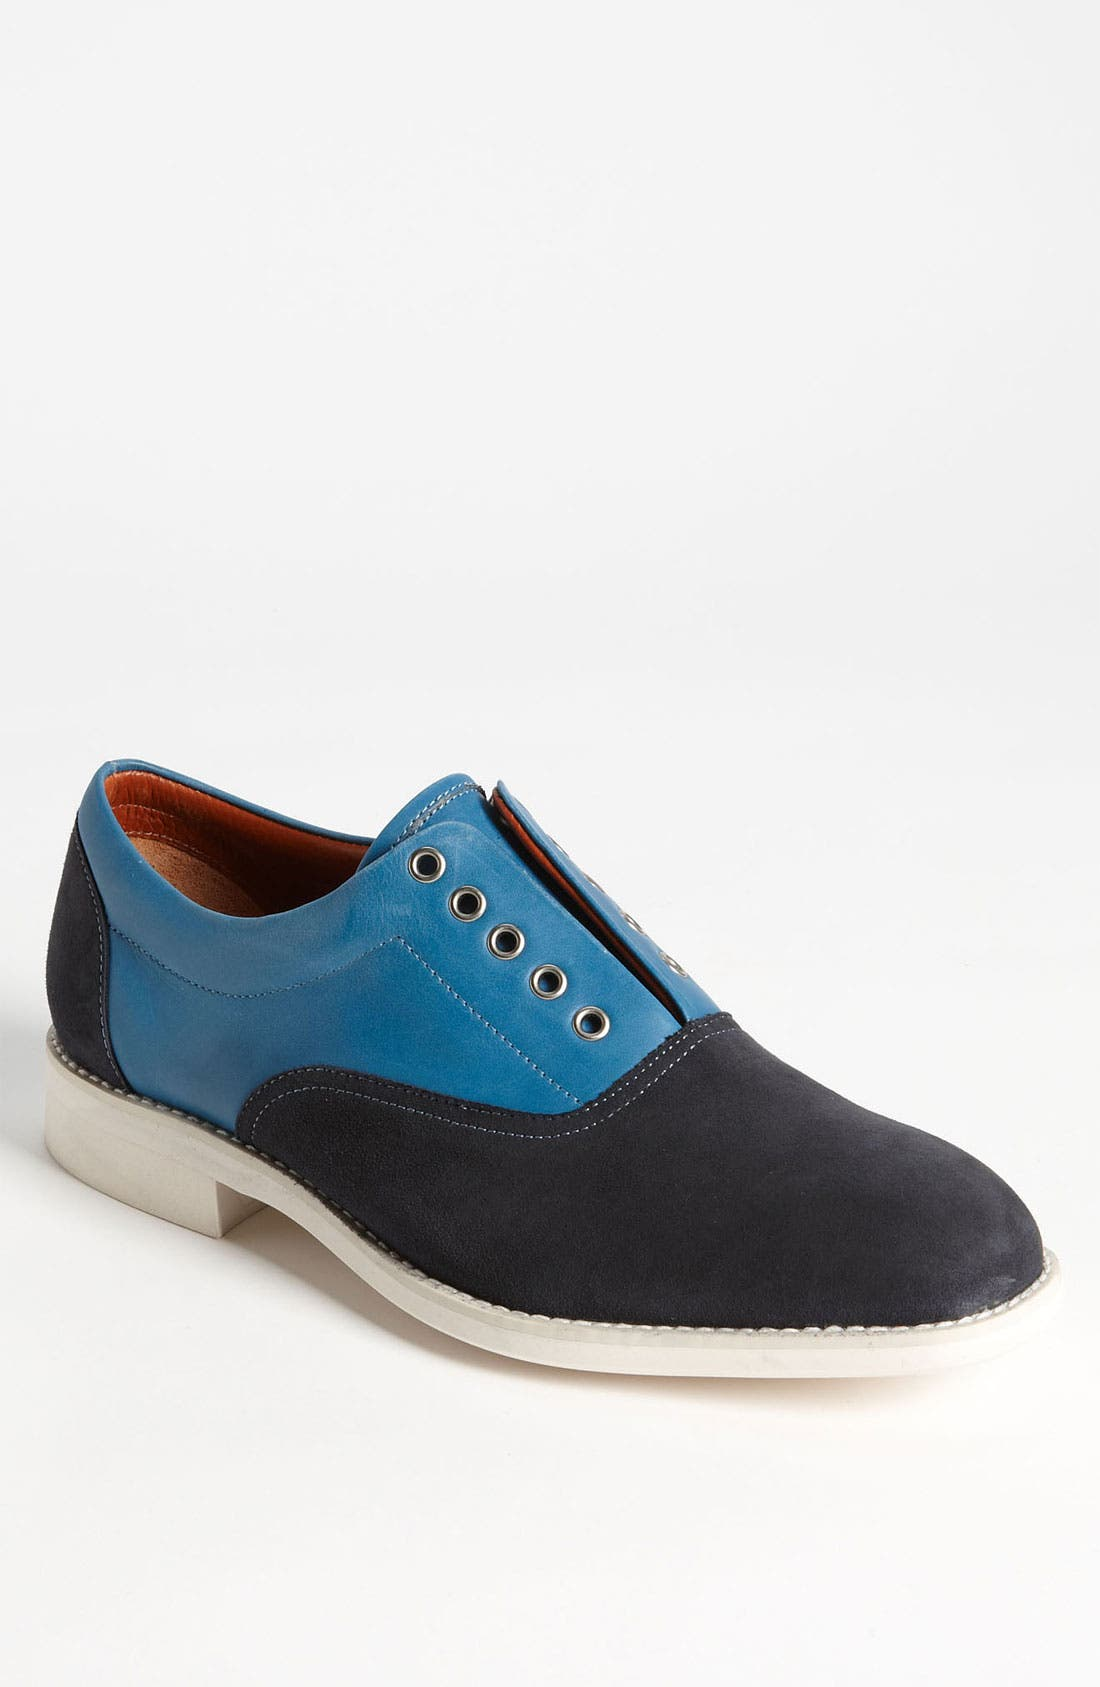 Main Image - Florsheim by Duckie Brown Laceless Oxford